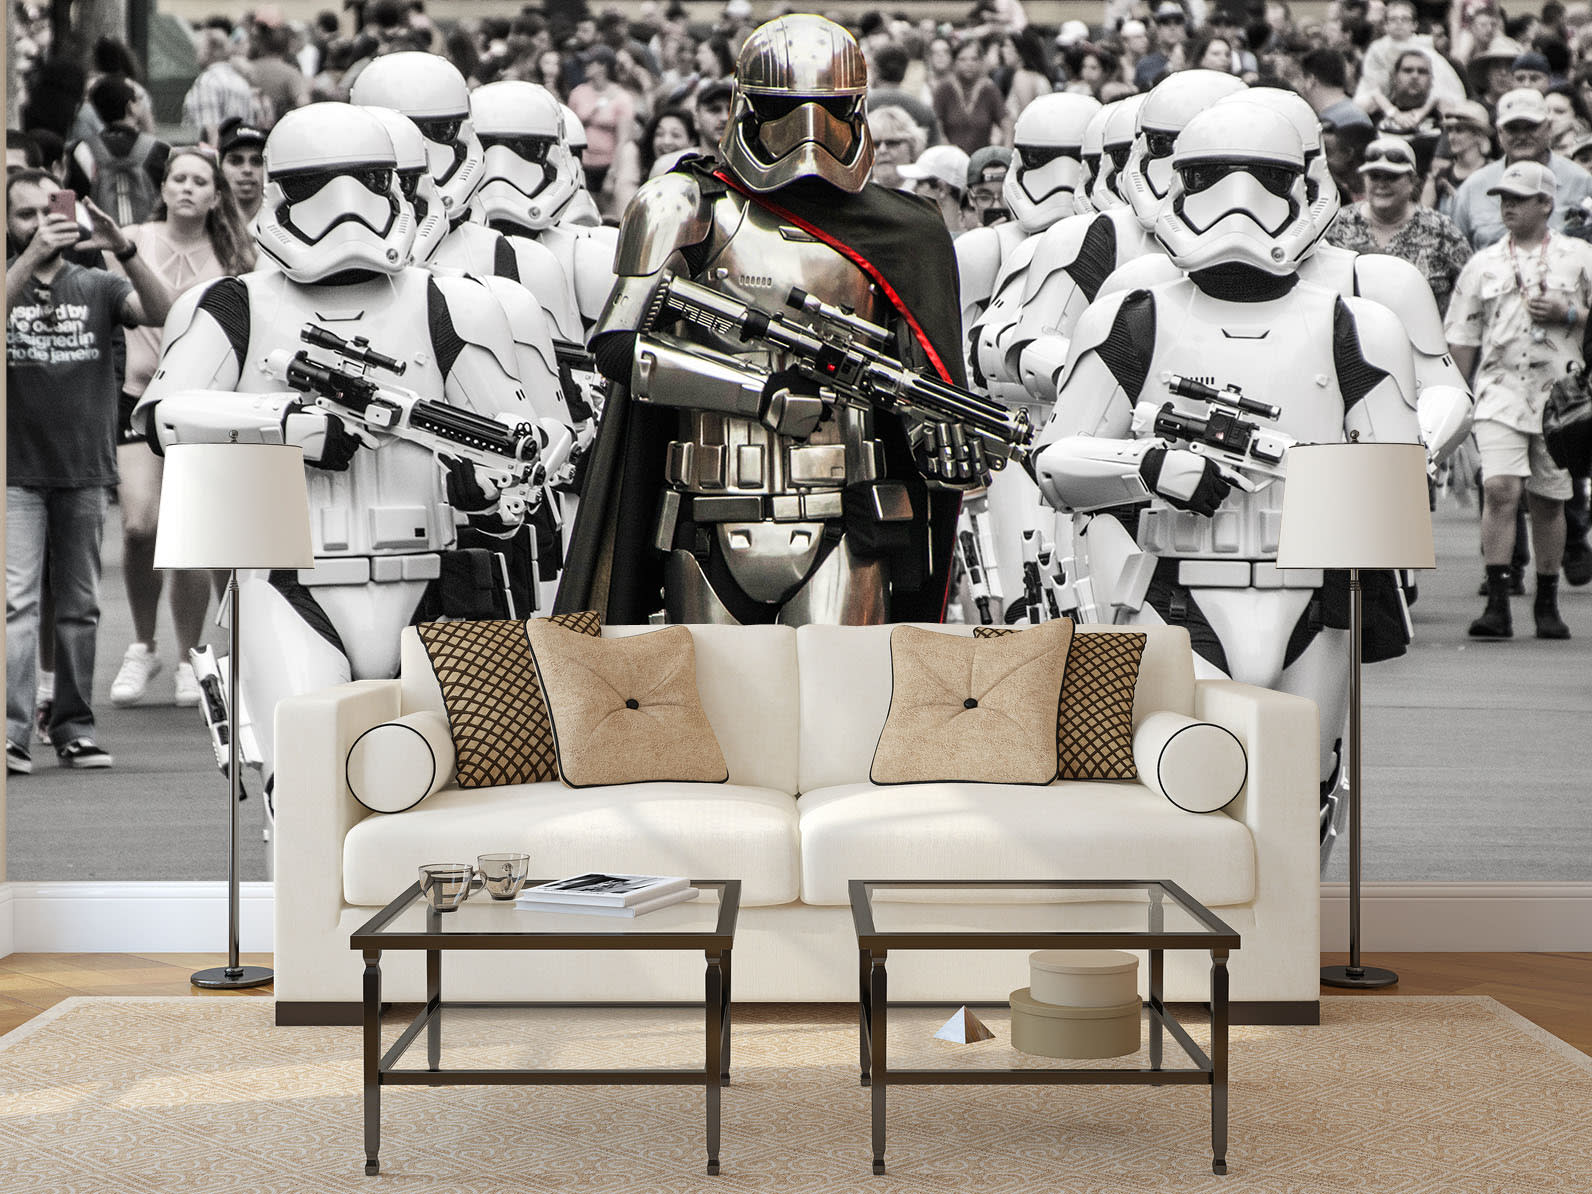 Stormtroopers march ls59zz